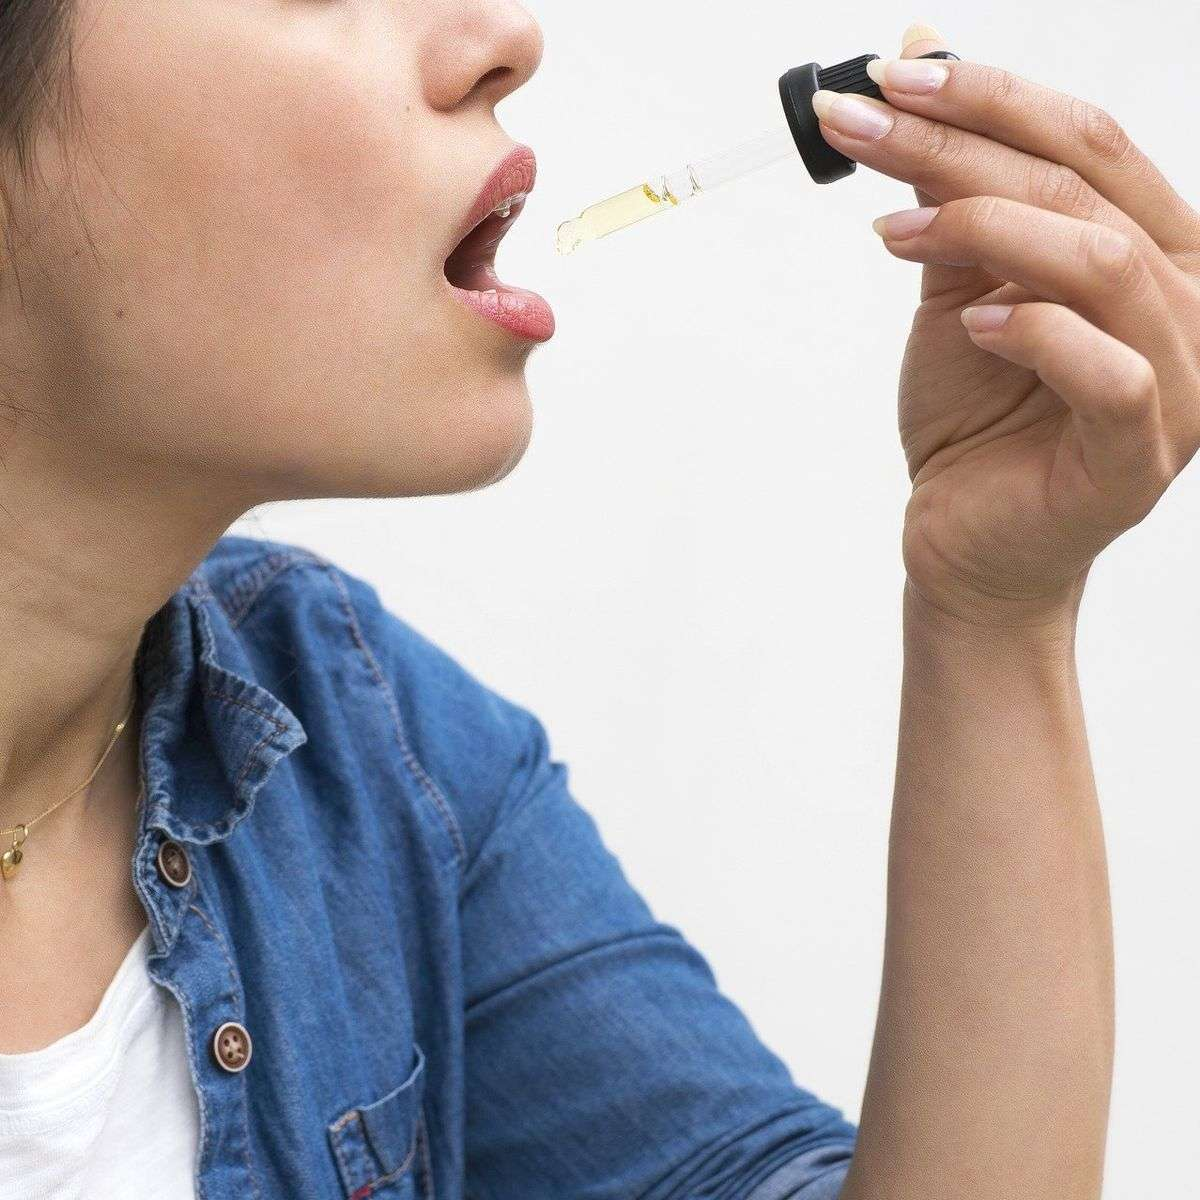 HOW LONG DOES IT TAKE FOR CBD OIL TO WORK ORALLY?